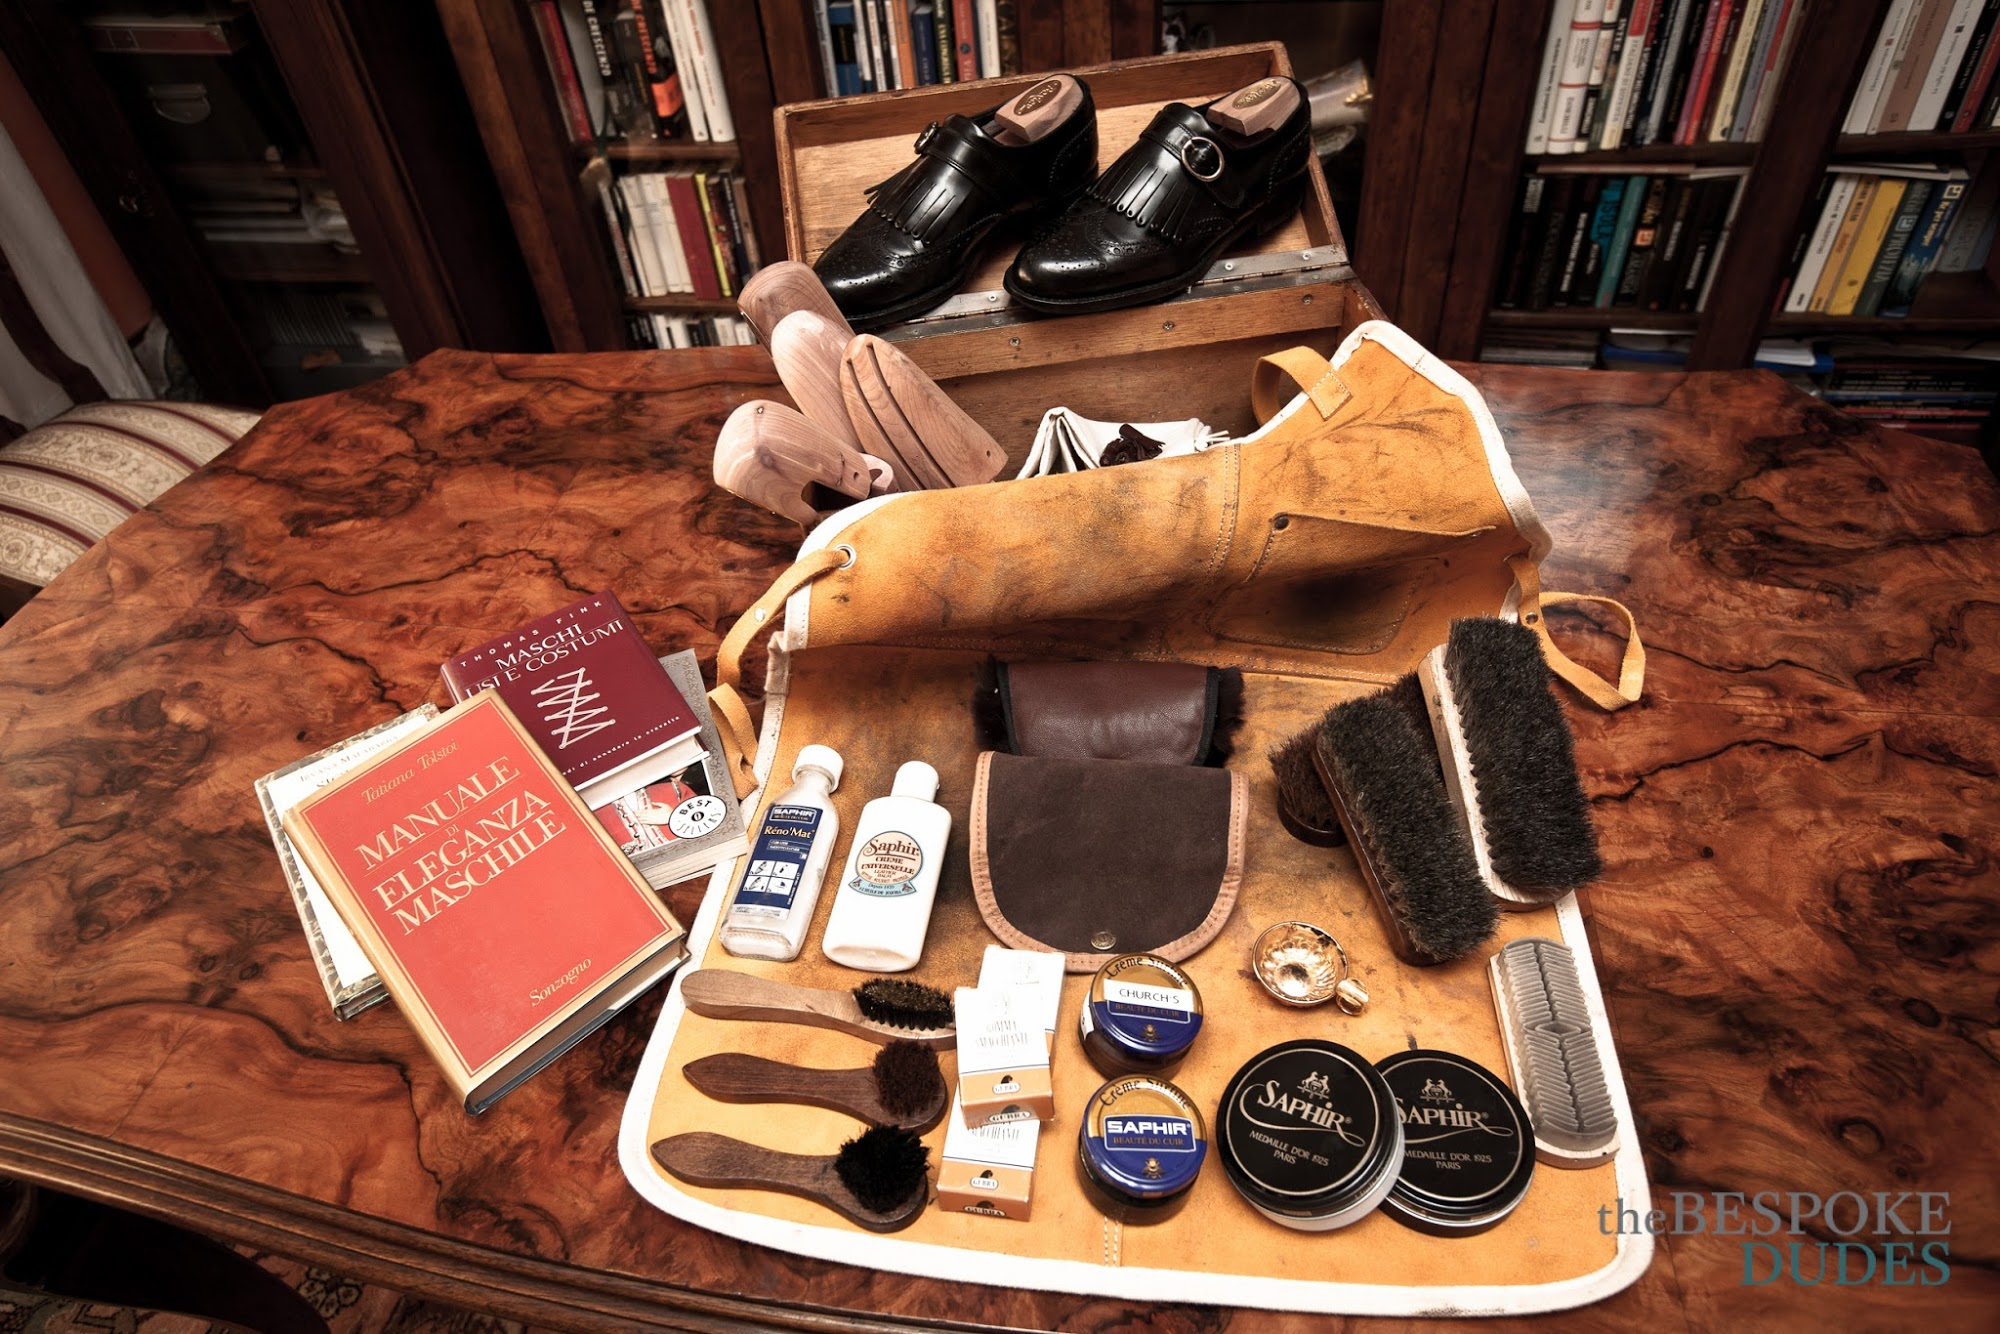 Bespoke Tips: Shoe Shining